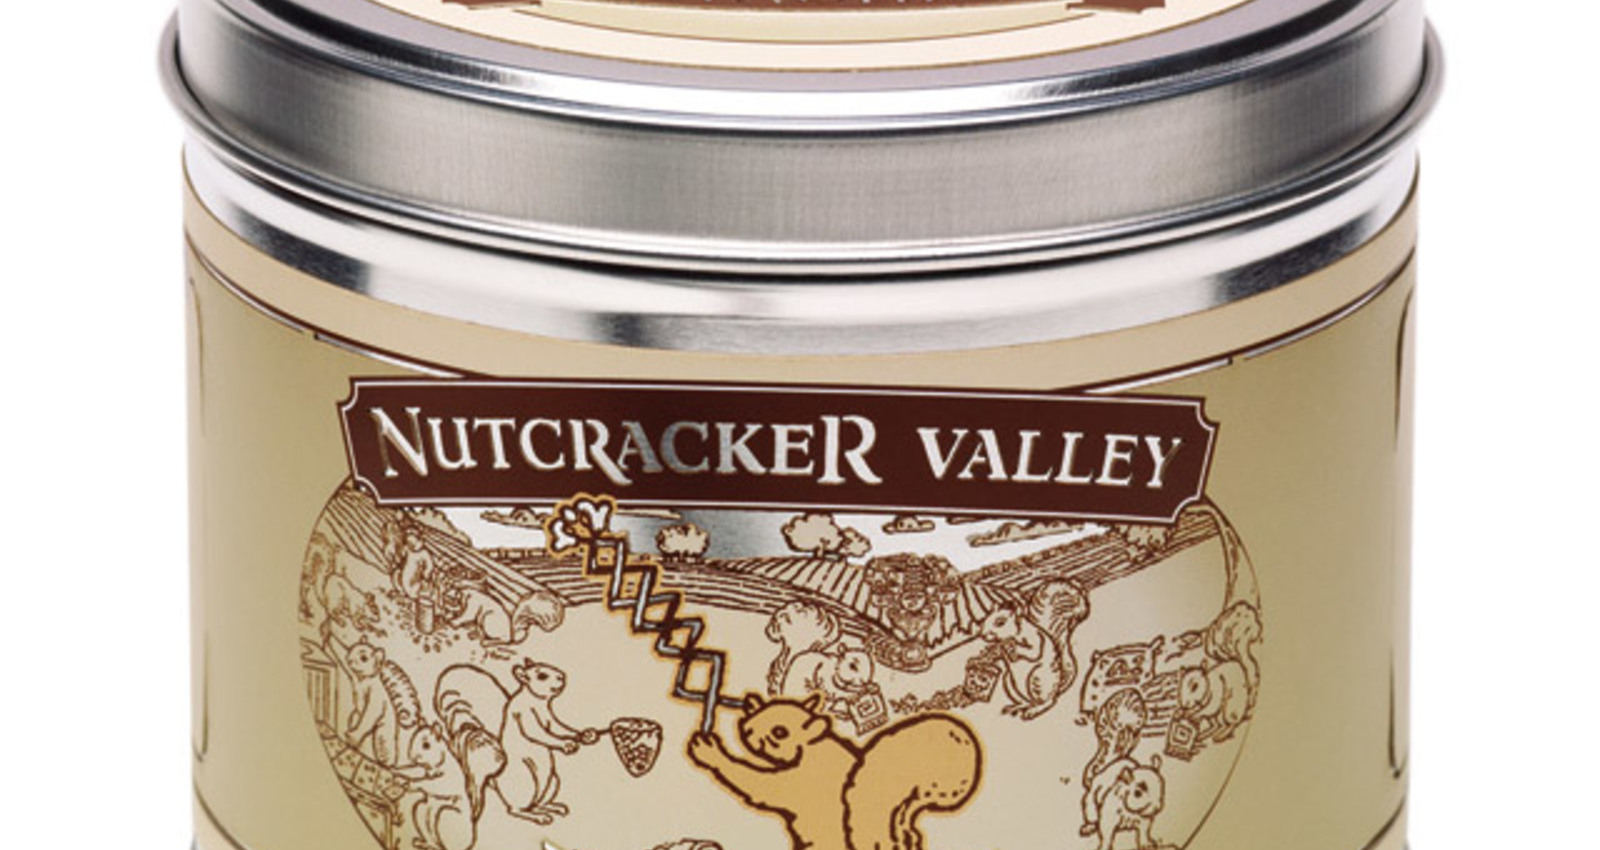 Nutcracker Valley packaging